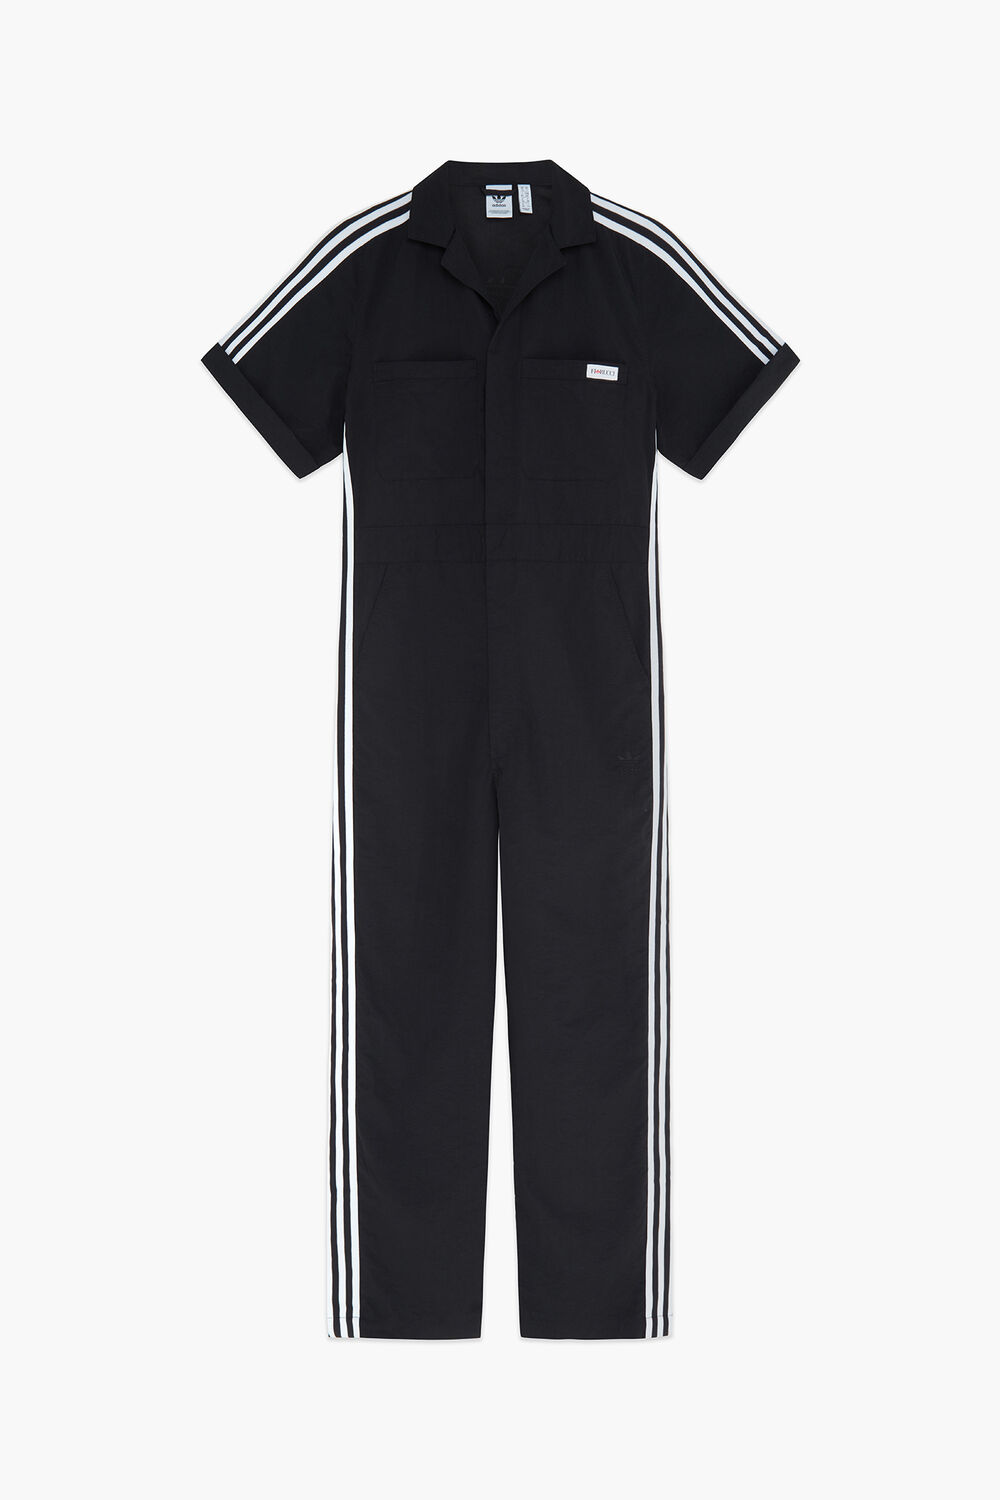 Adidas x Fiorucci Boilersuit Black